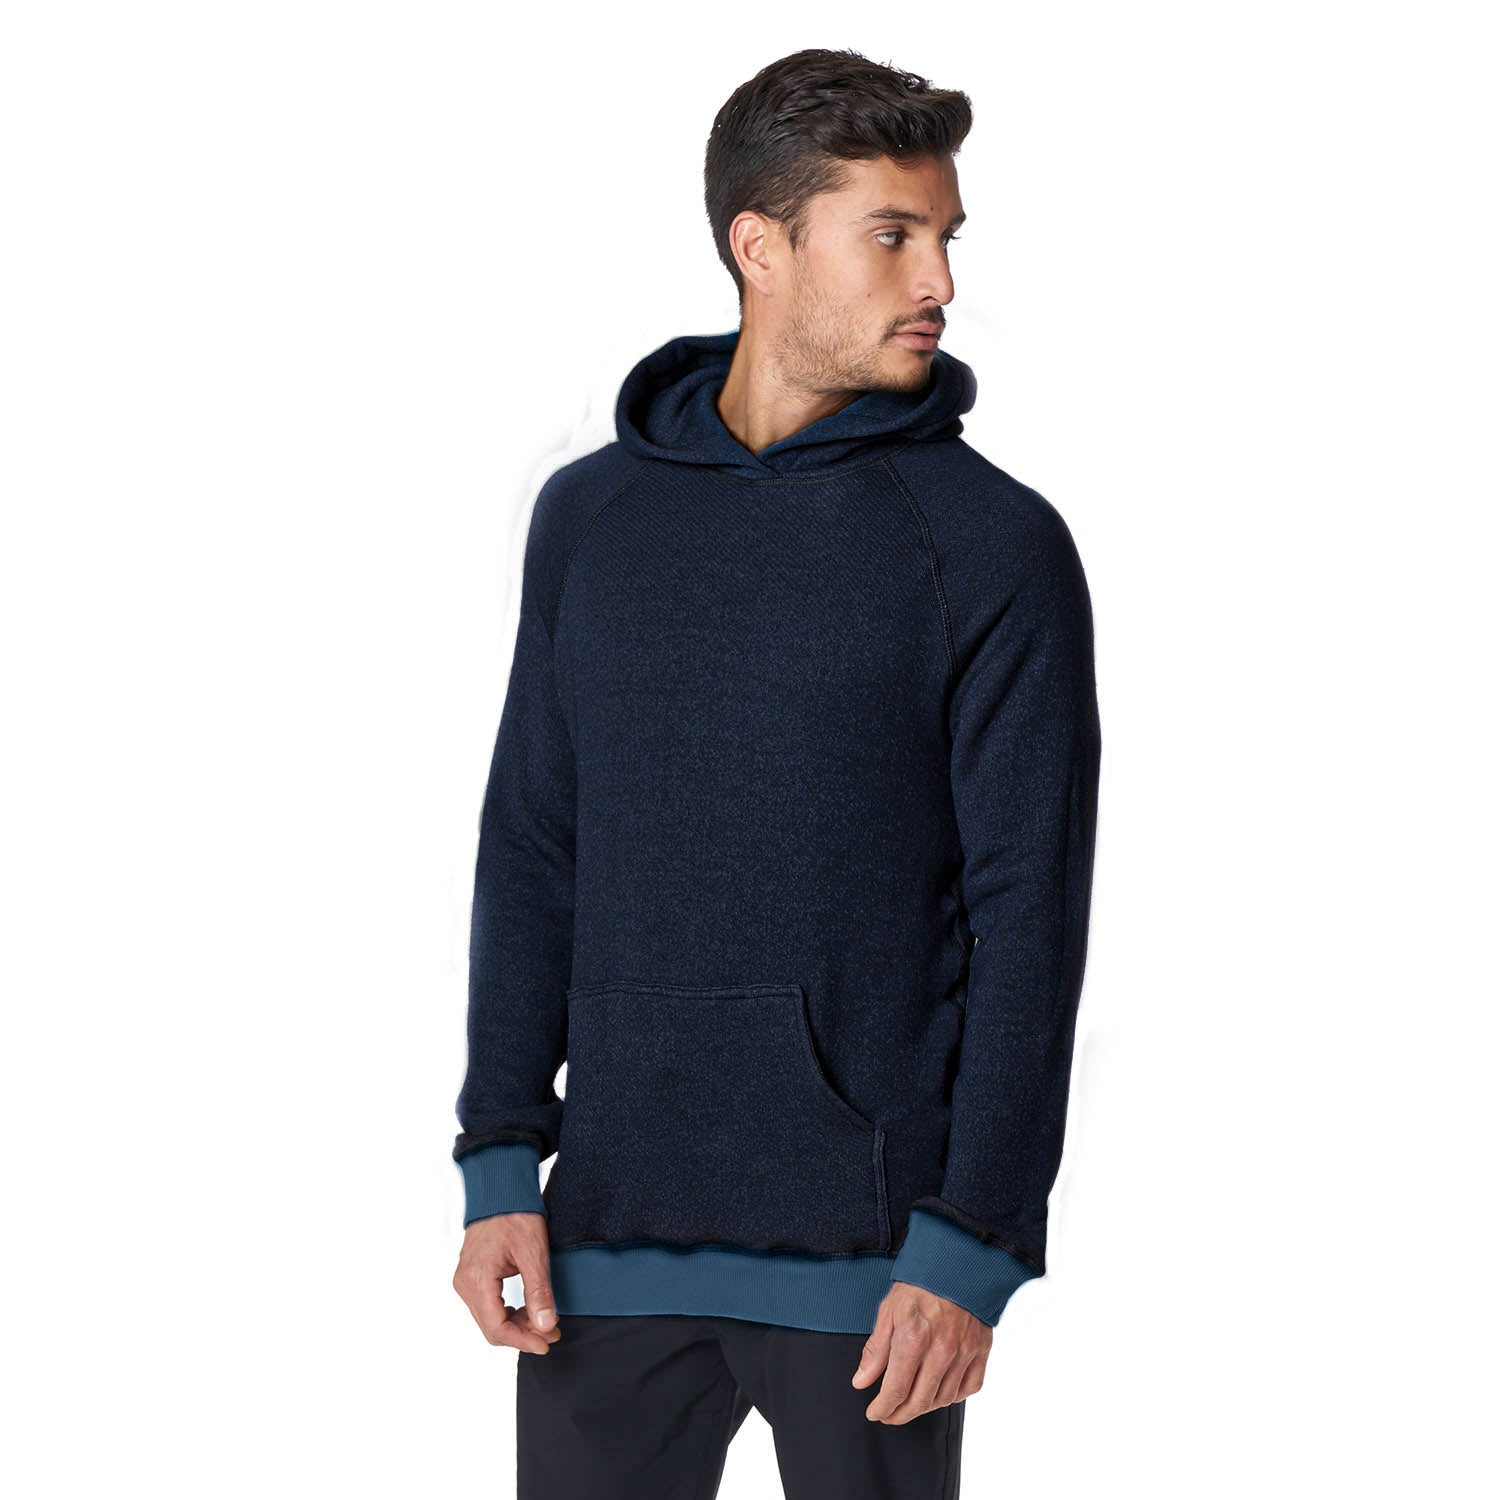 Pull Over Hoodie in Navy - Mitchell Evan